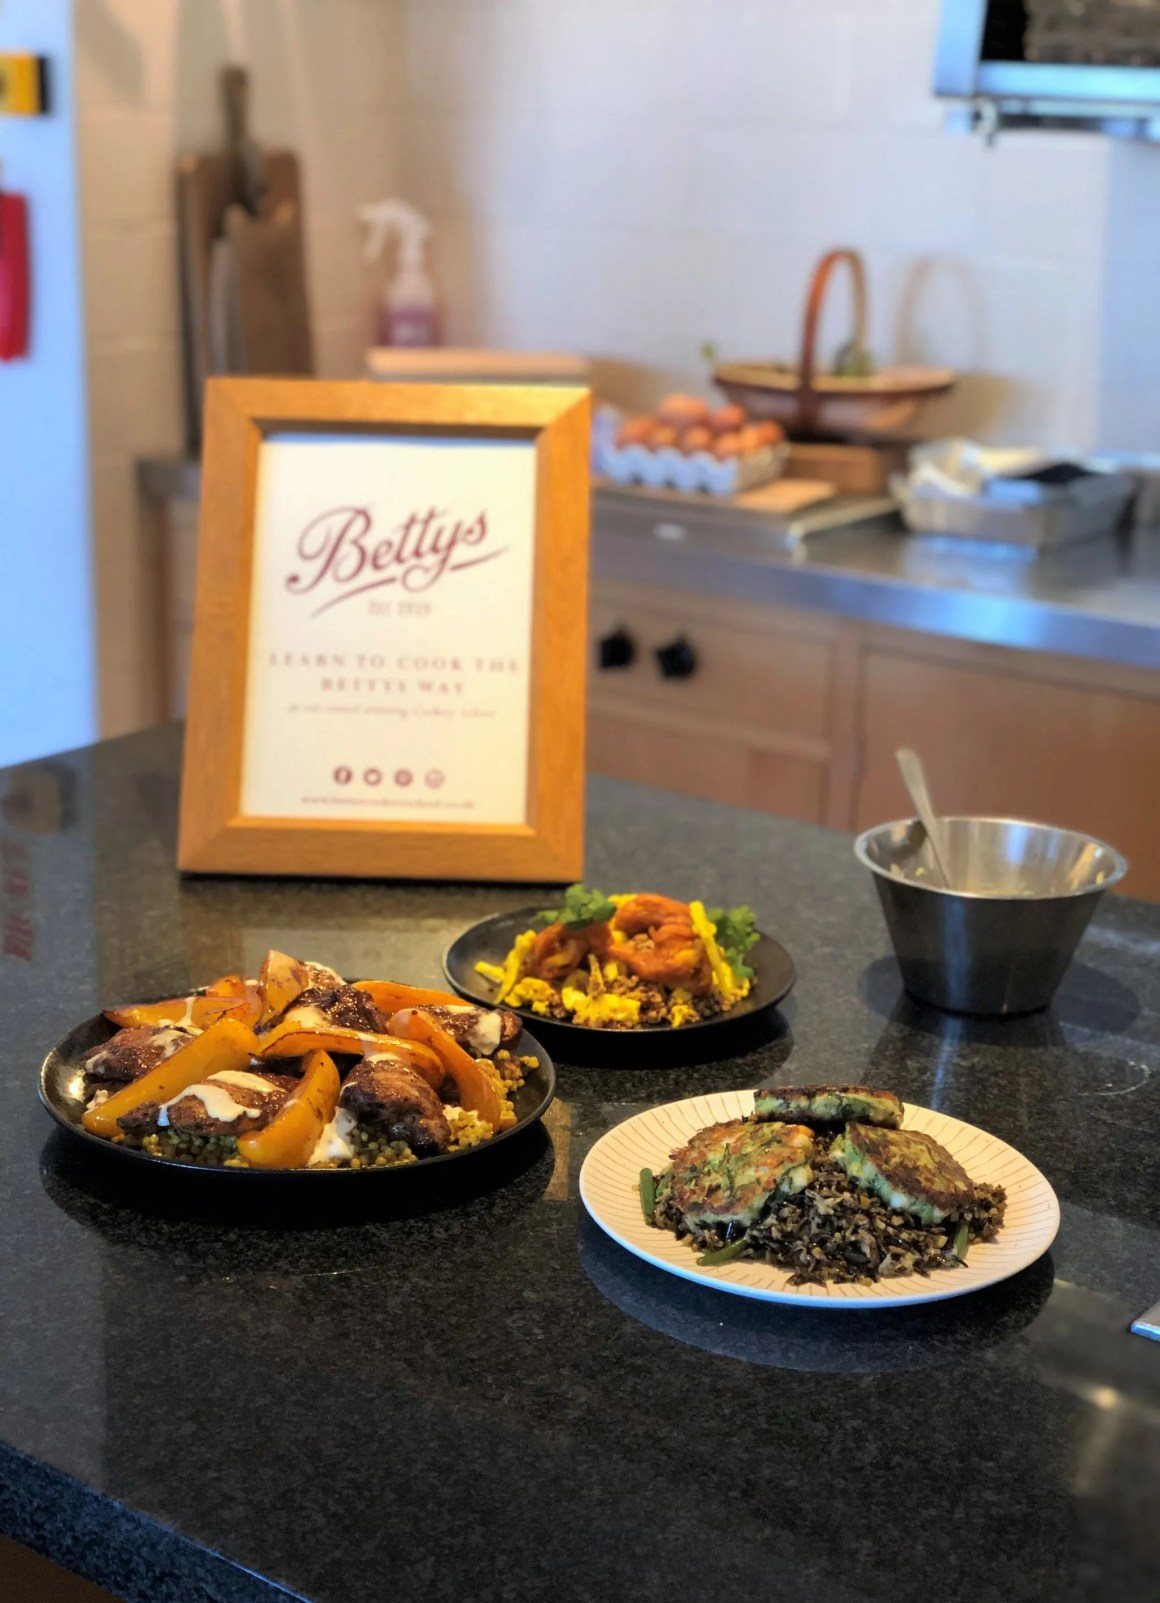 Bettys cookery school go with the grain review